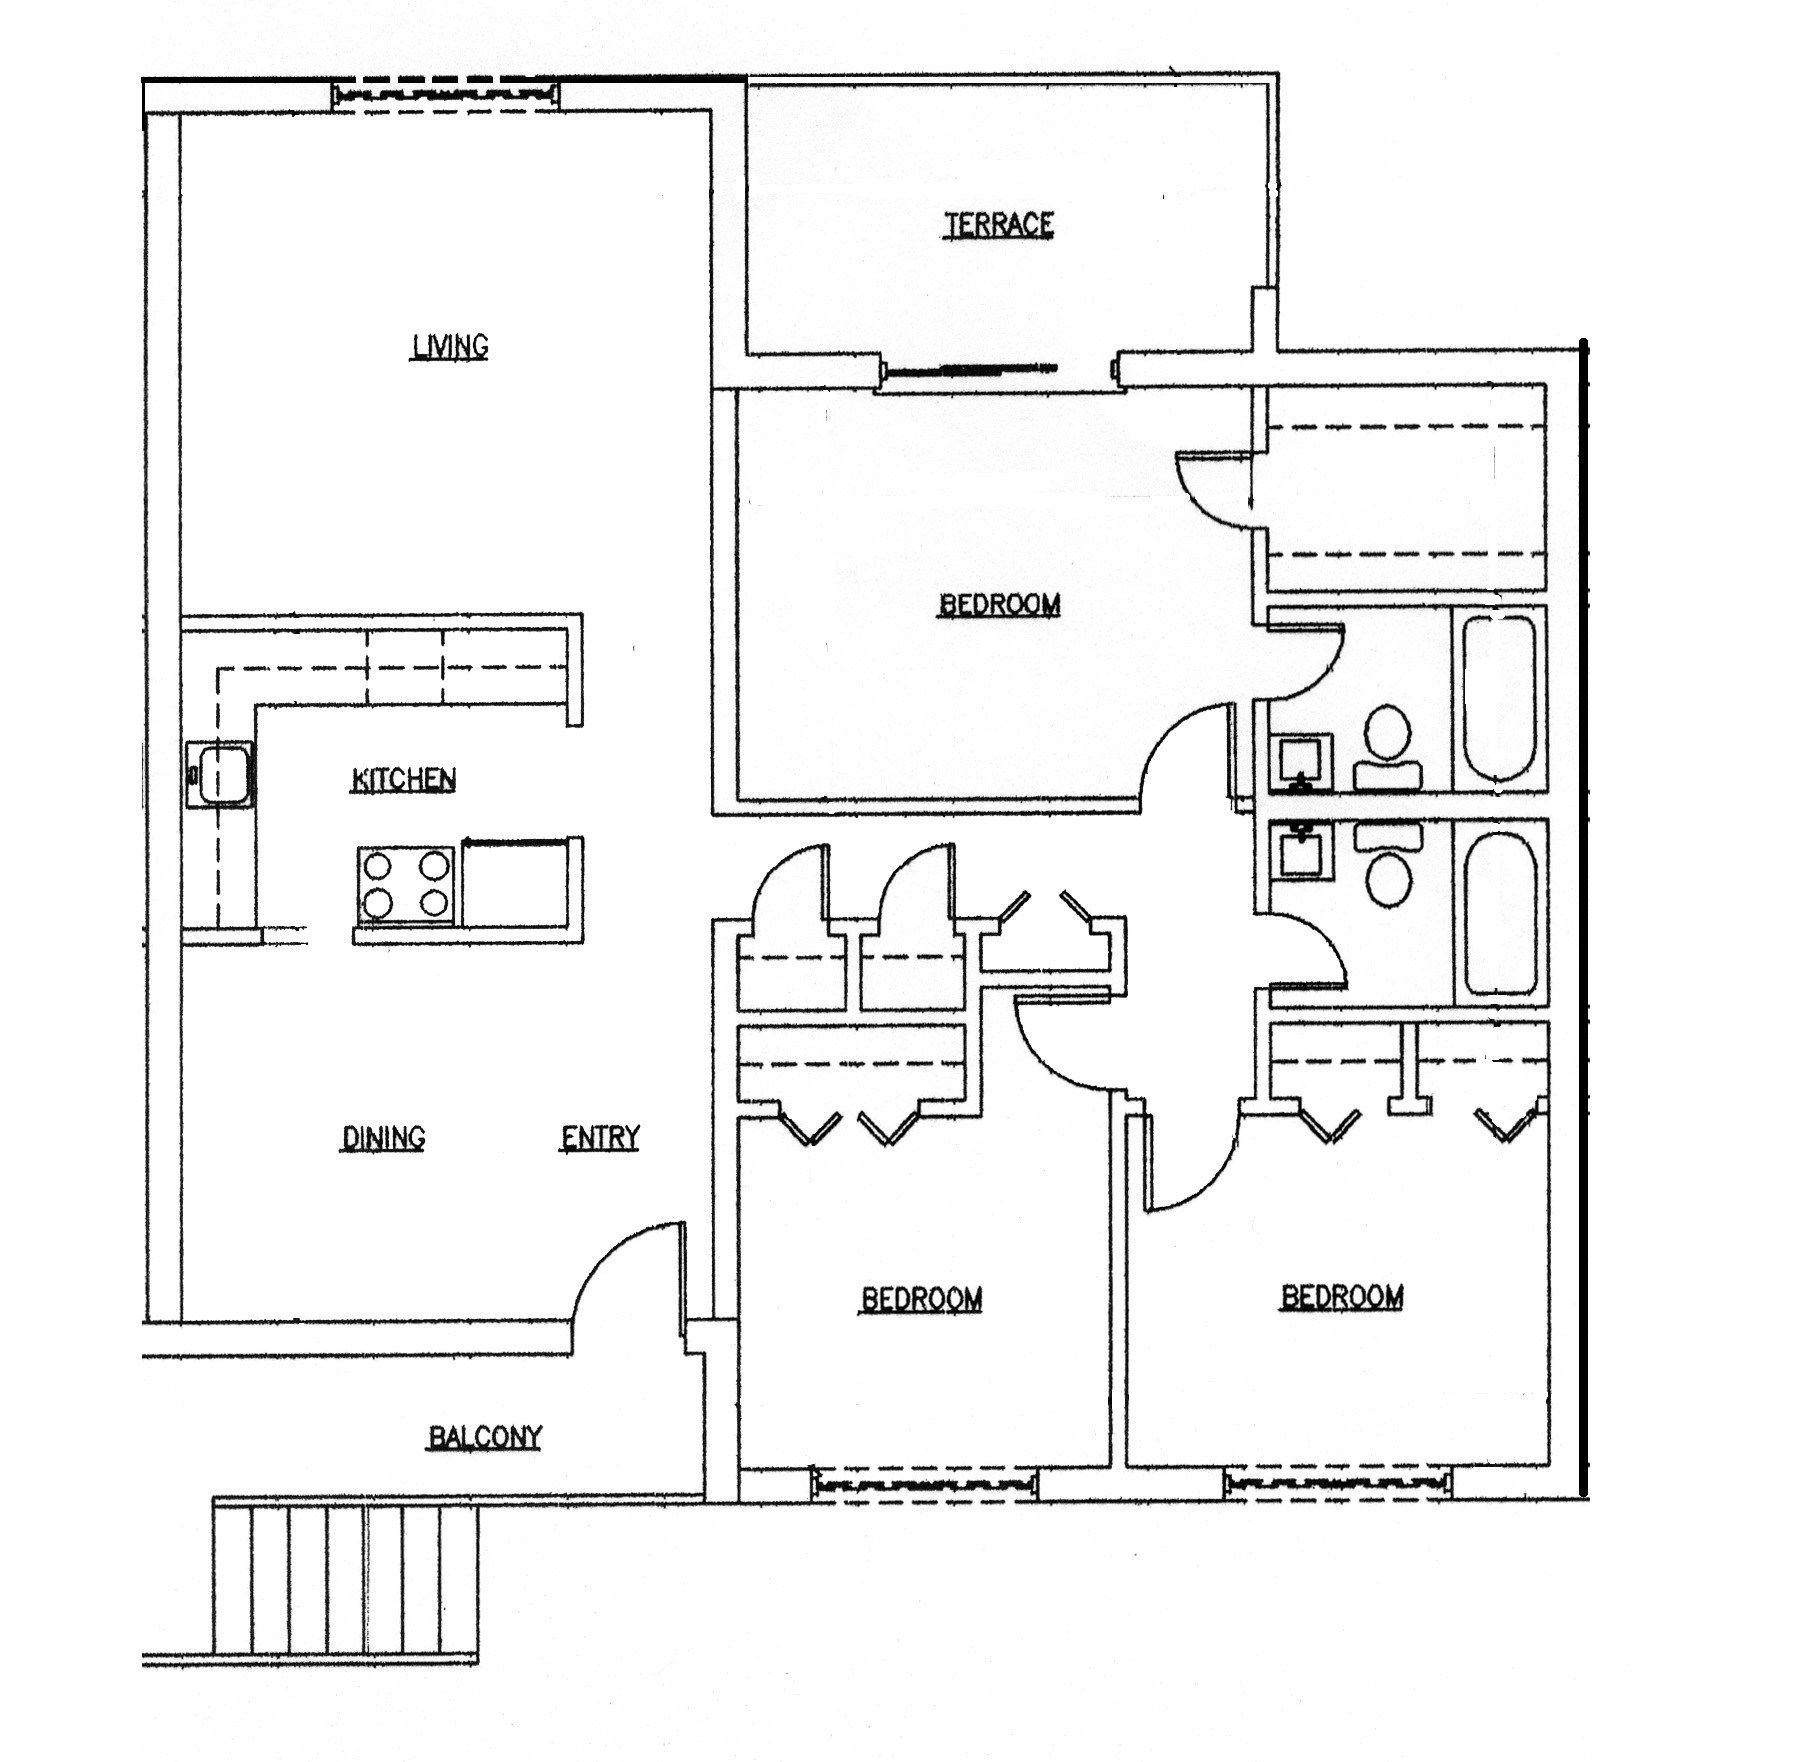 Bedroom House Floor Plans Simple Small House Floor Plans Bedroom House Plans Bedroom Sto Open Floor House Plans Bathroom Floor Plans Small Bathroom Floor Plans